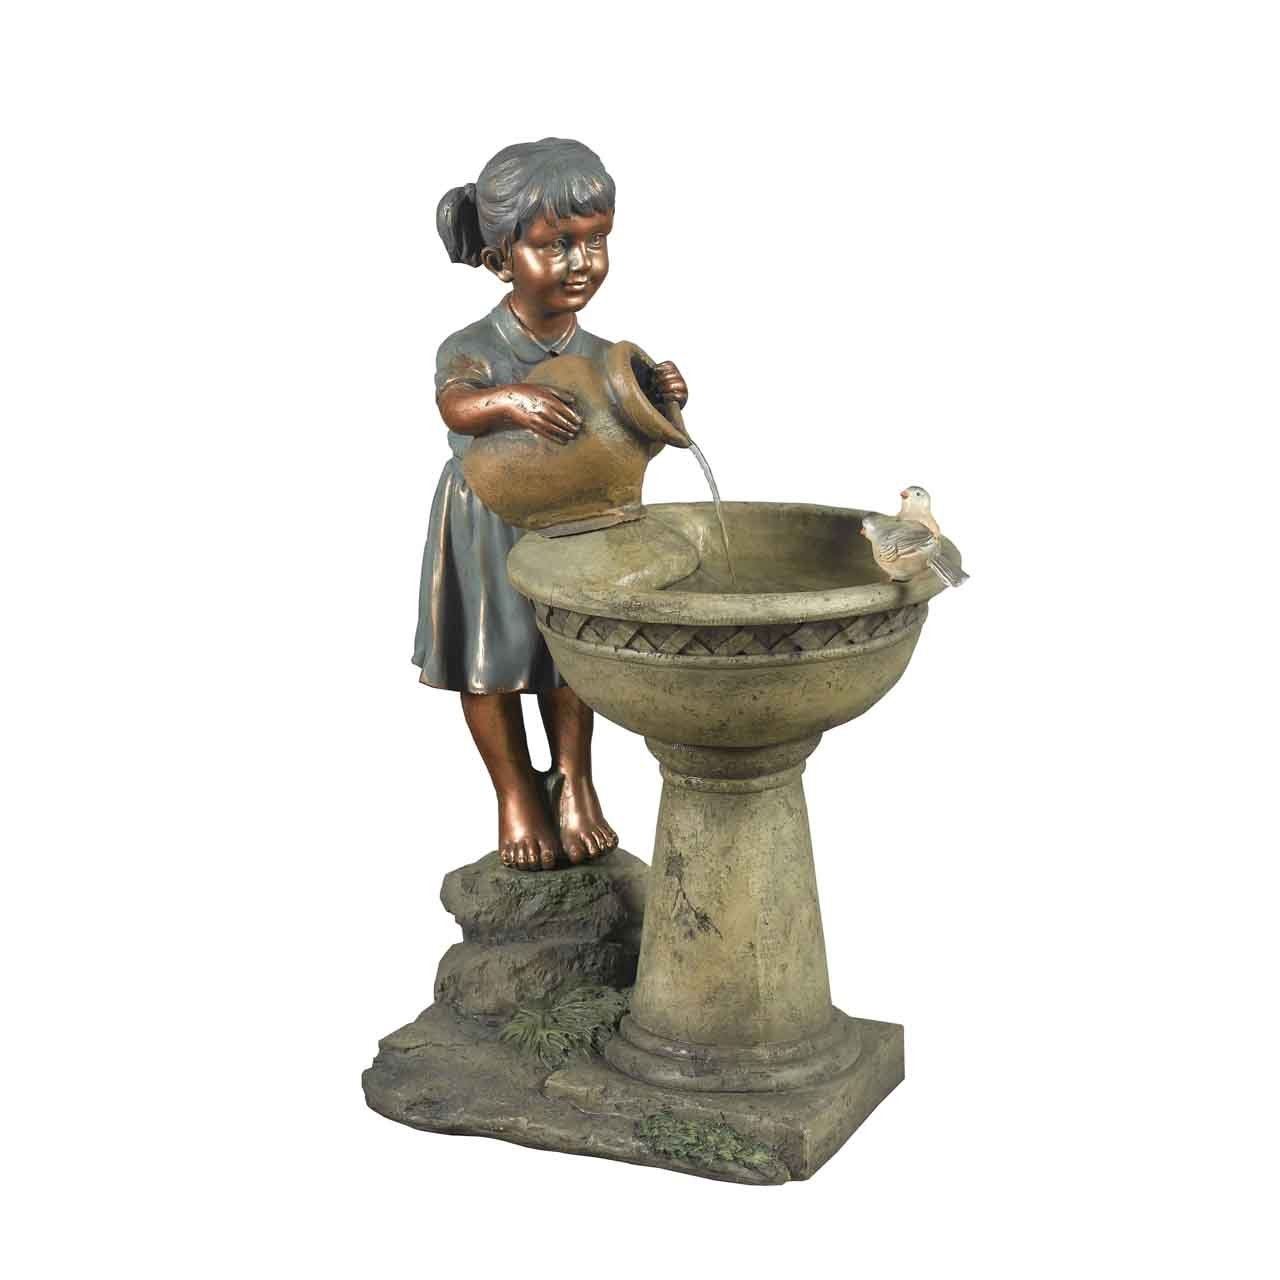 Jeco FCL010 Versando Bird Bath Outdoor, Multi by Jeco Inc.